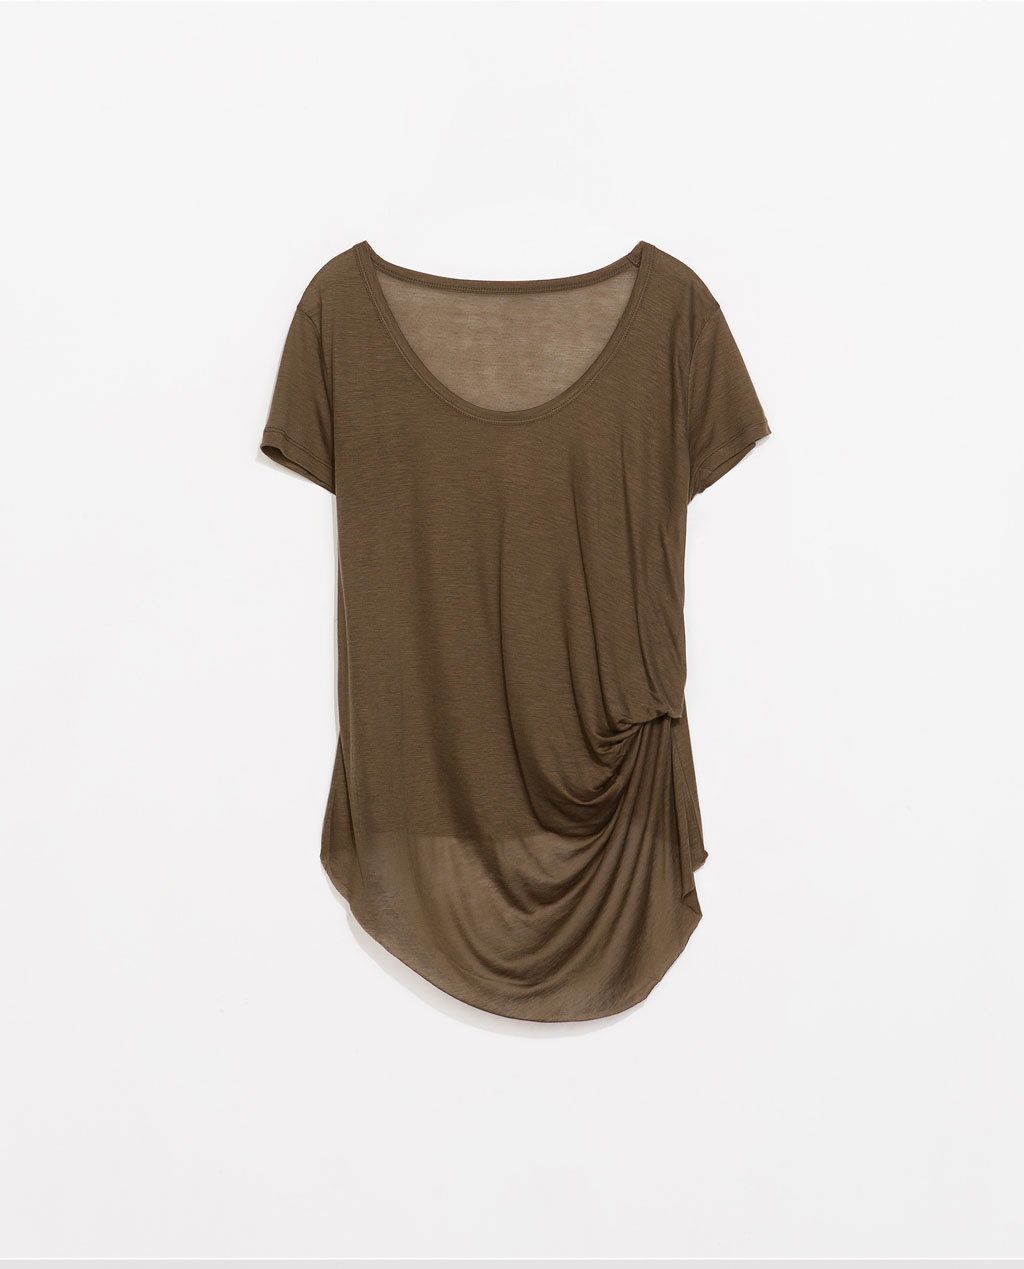 T Shirt With Side Knot - pattern: plain; style: t-shirt; predominant colour: khaki; occasions: casual; length: standard; neckline: scoop; fit: body skimming; hip detail: subtle/flattering hip detail; sleeve length: short sleeve; sleeve style: standard; pattern type: fabric; texture group: jersey - stretchy/drapey; fibres: viscose/rayon - mix; season: s/s 2014